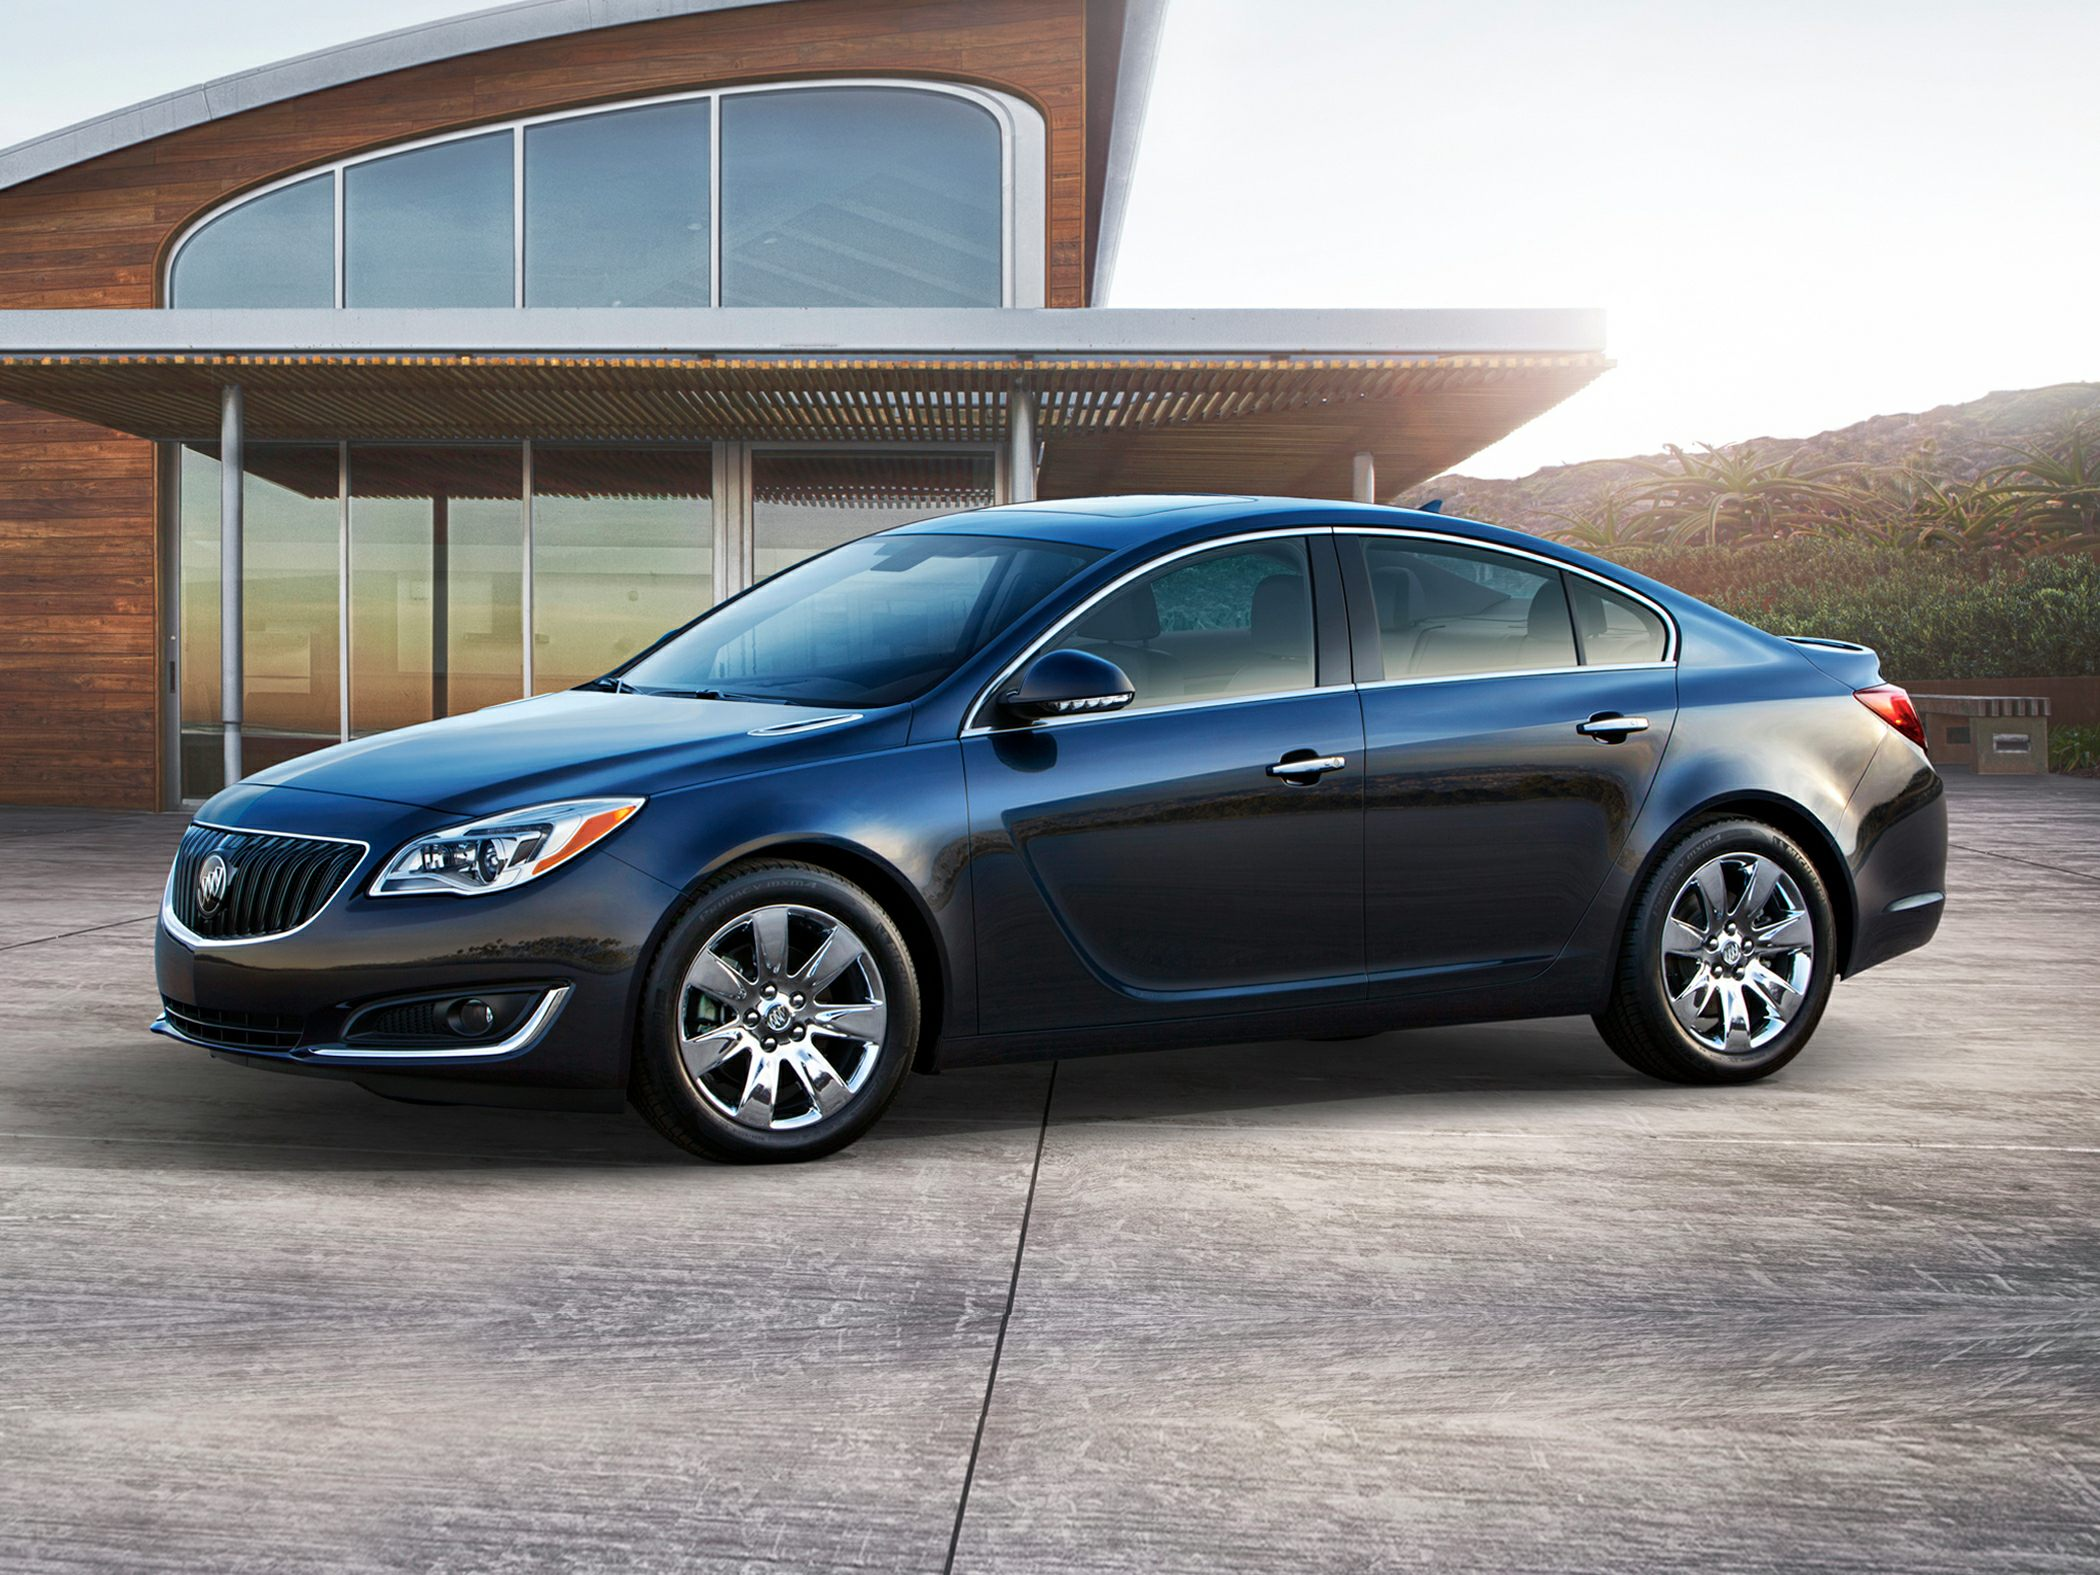 Buick regal deals